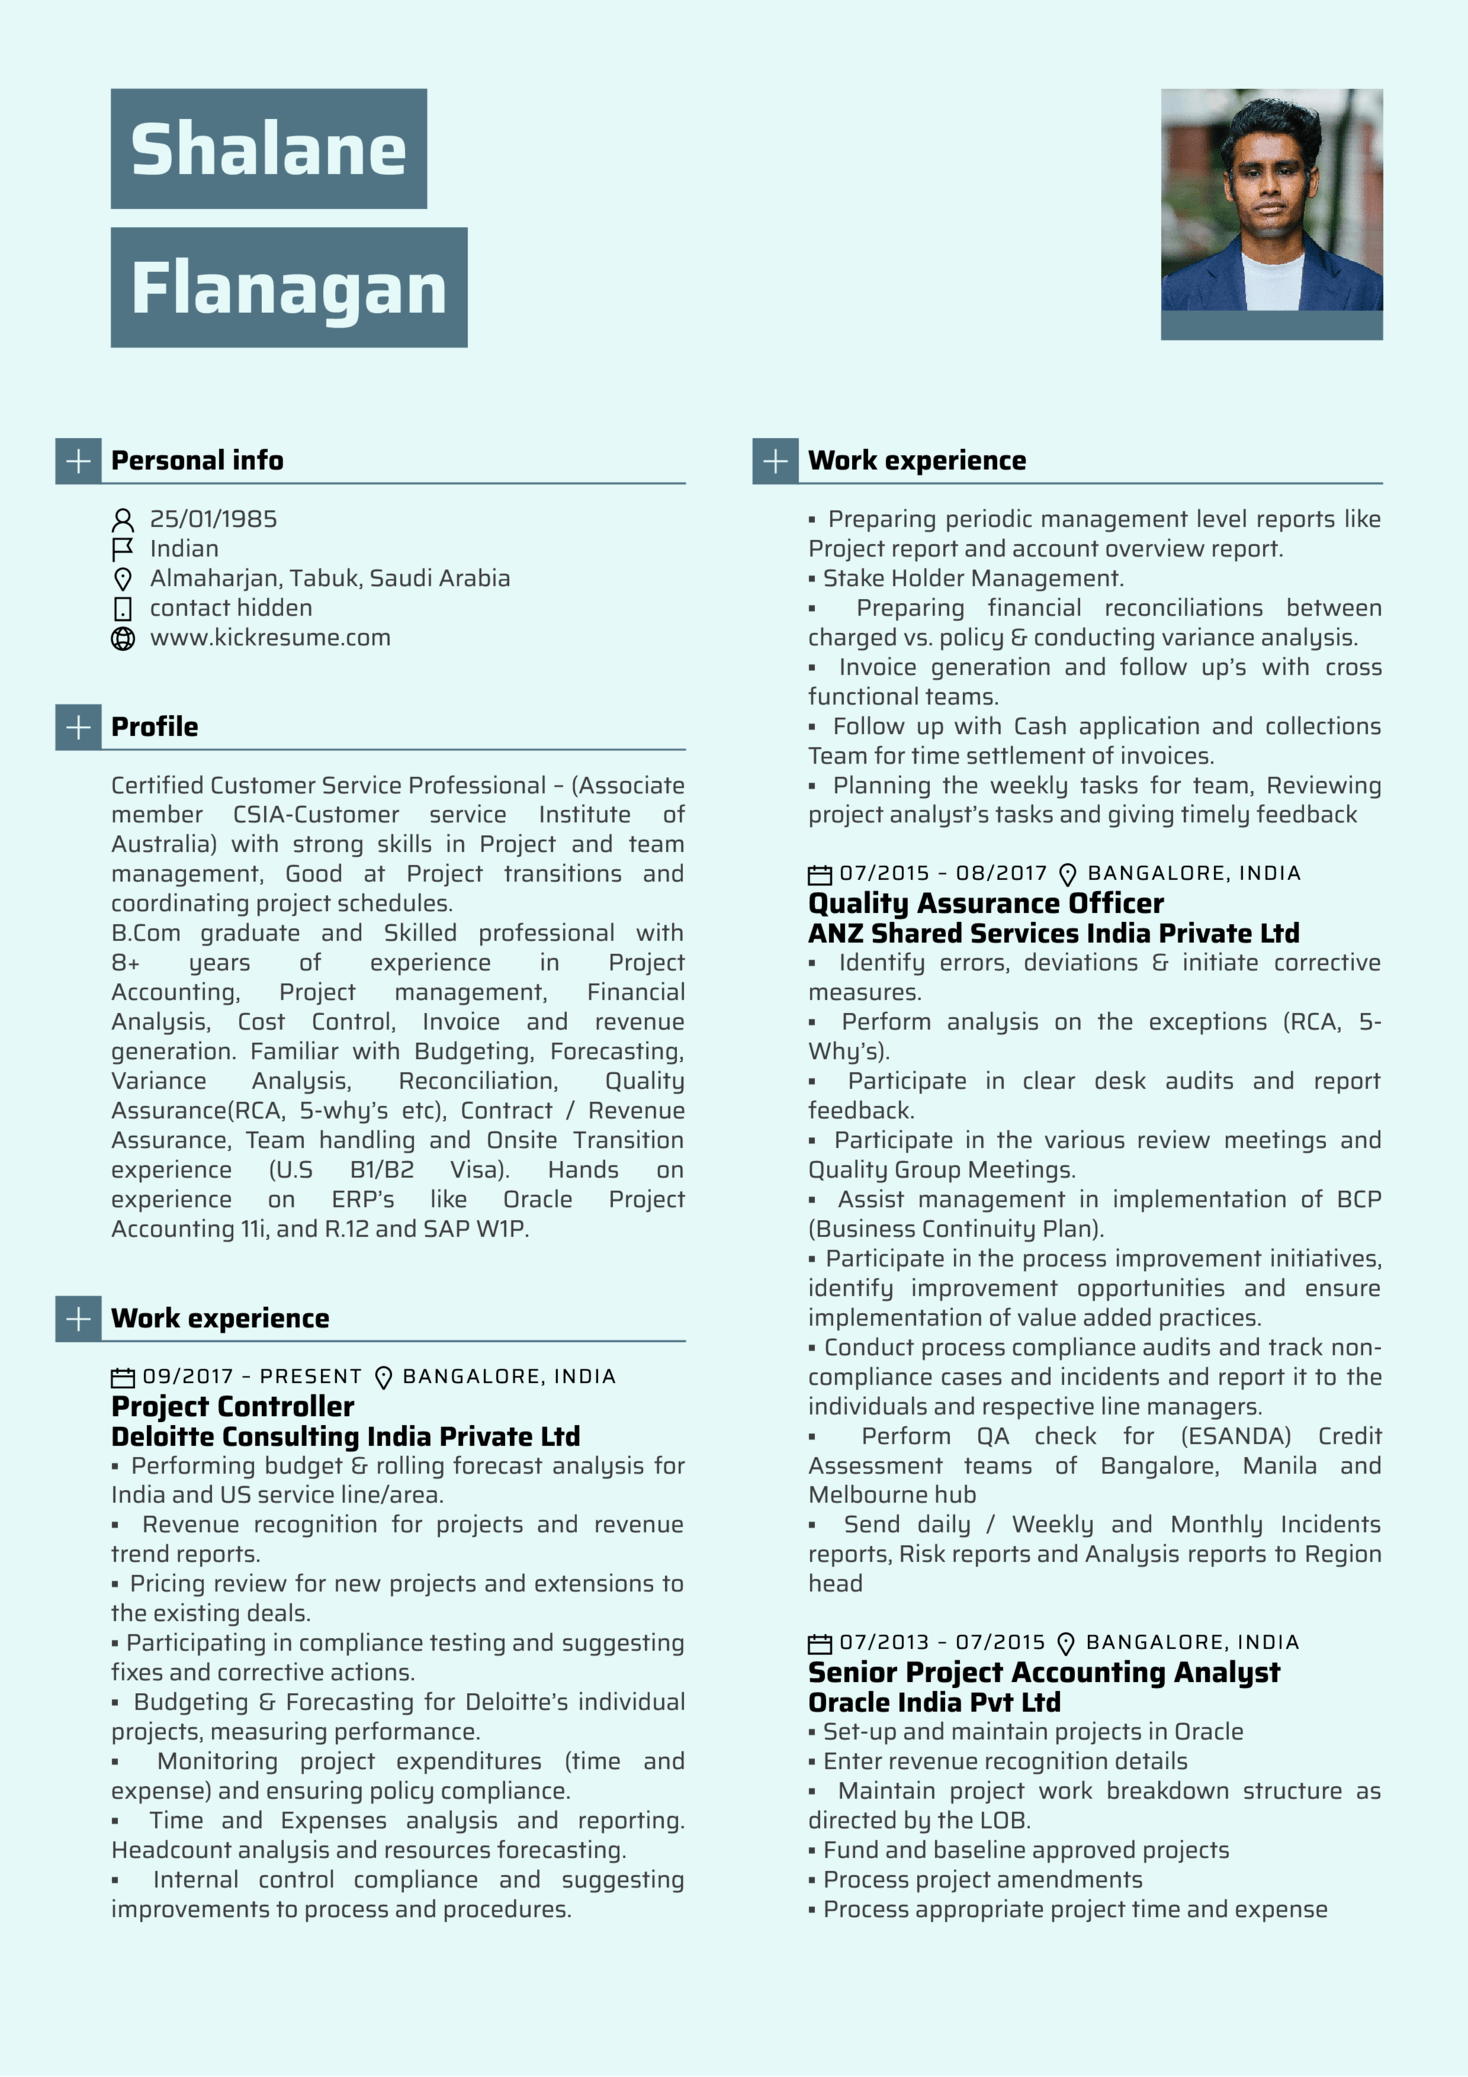 Deloitte finance manager resume template